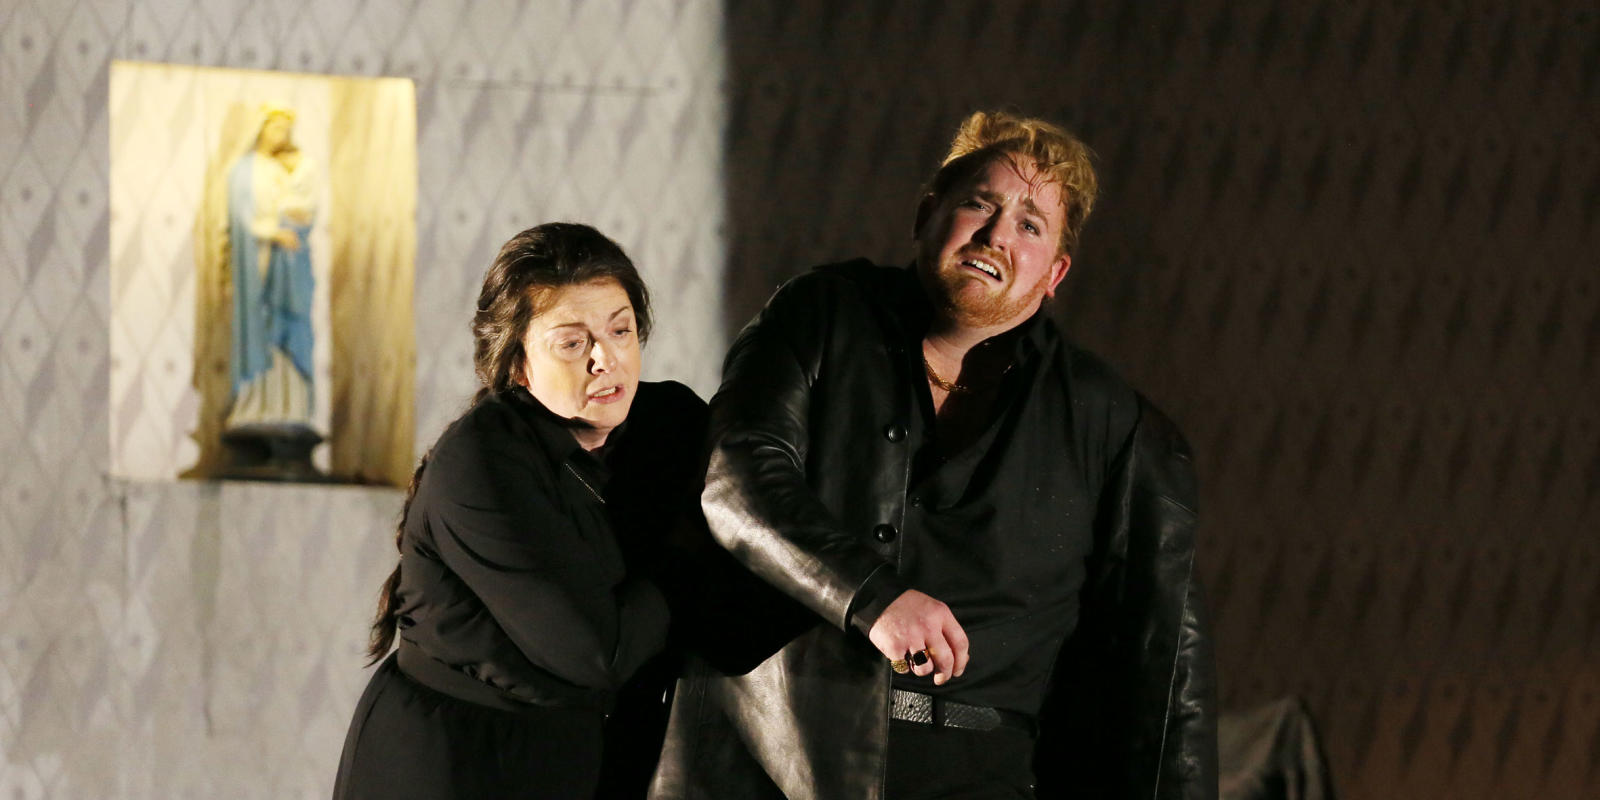 Visibly distraught man with ginger hair in a black coat being ushered by a woman in ENO's Jenufa